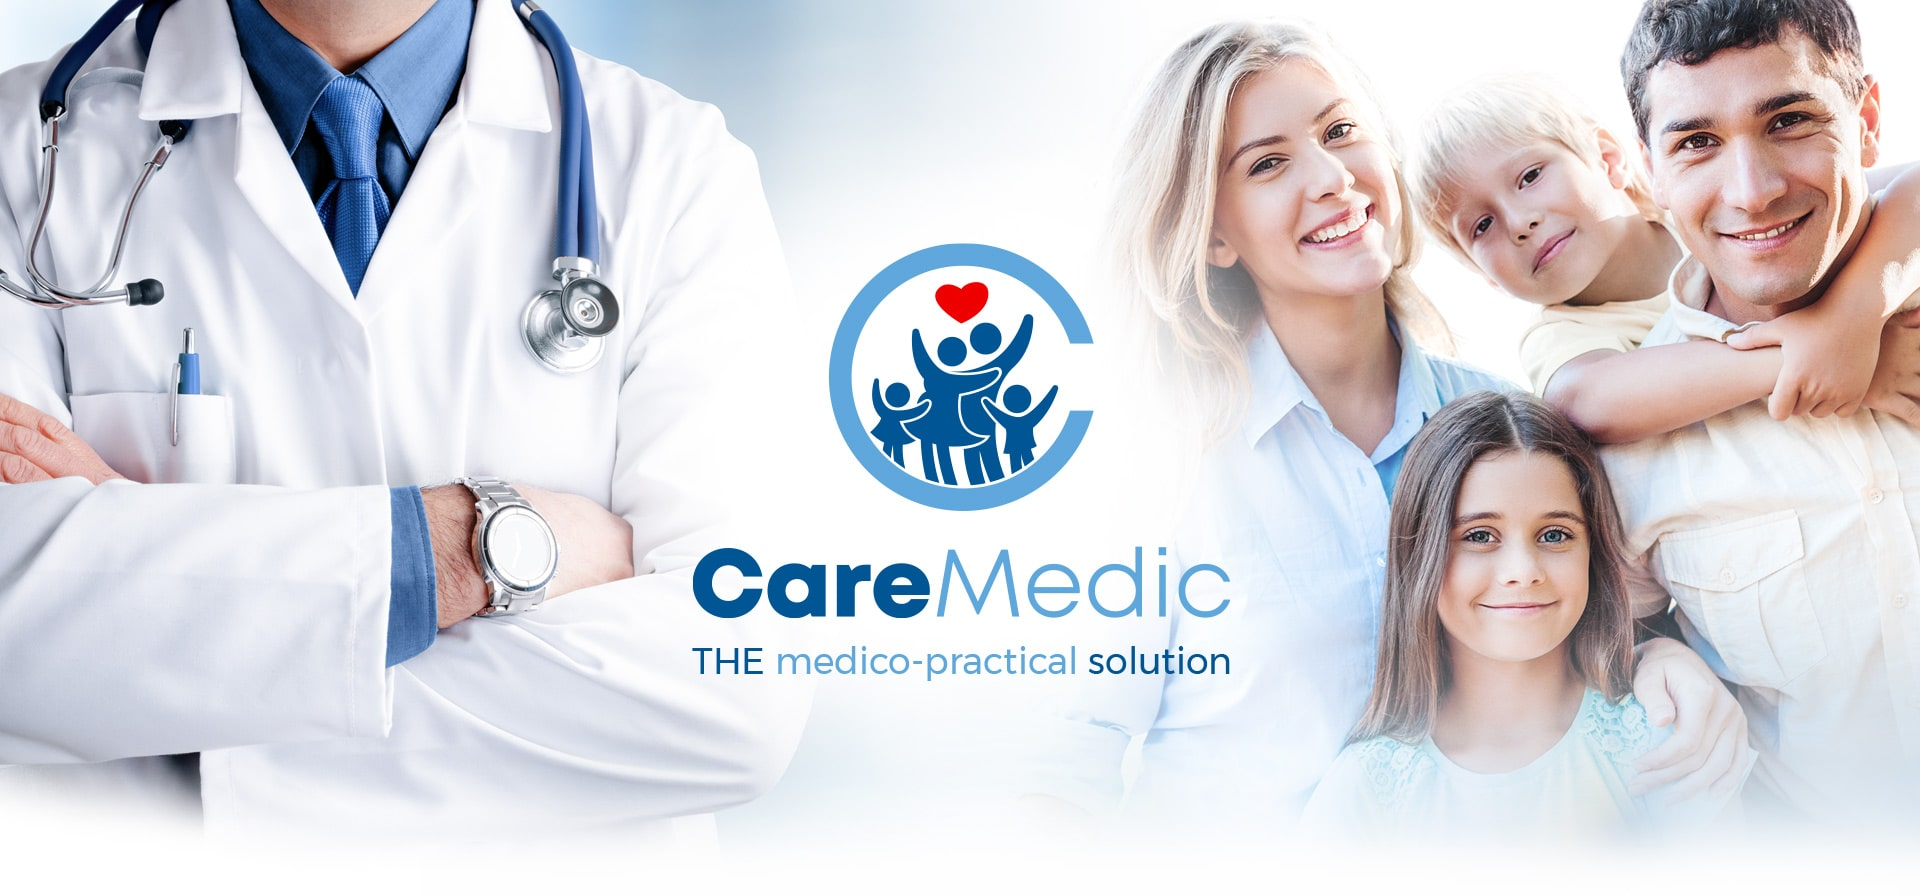 my-health-simplified-doctor-pharmacist-nurse-patient-medical-record-application-banner-welcome